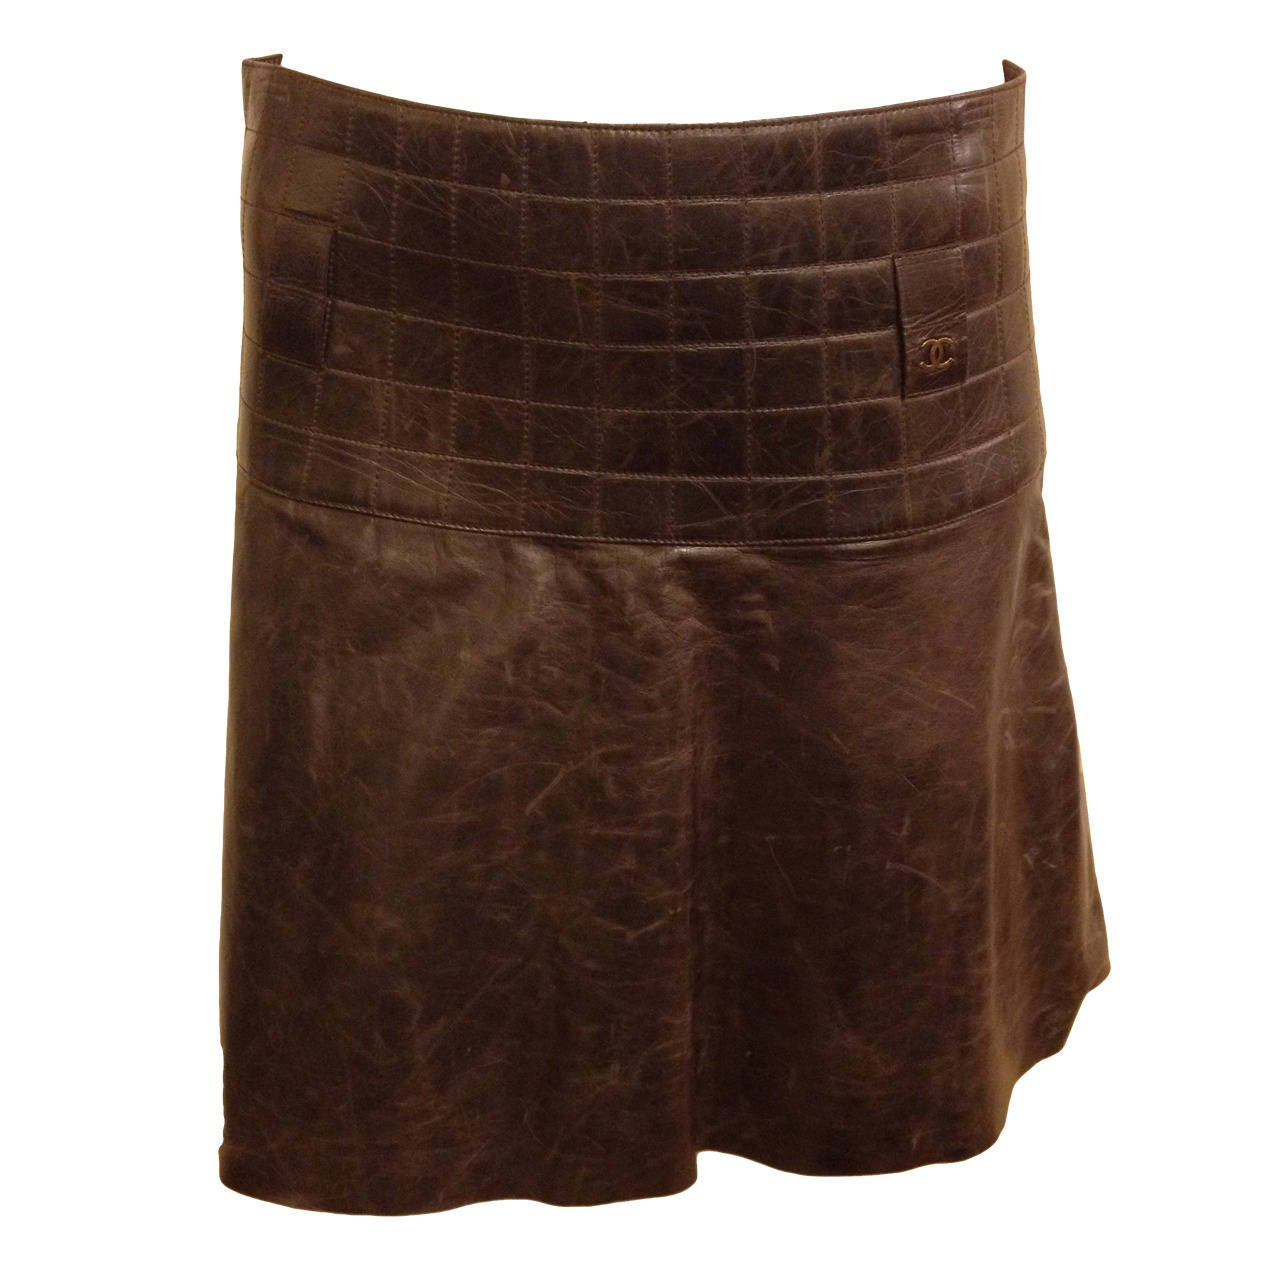 chanel brown leather mini skirt at 1stdibs